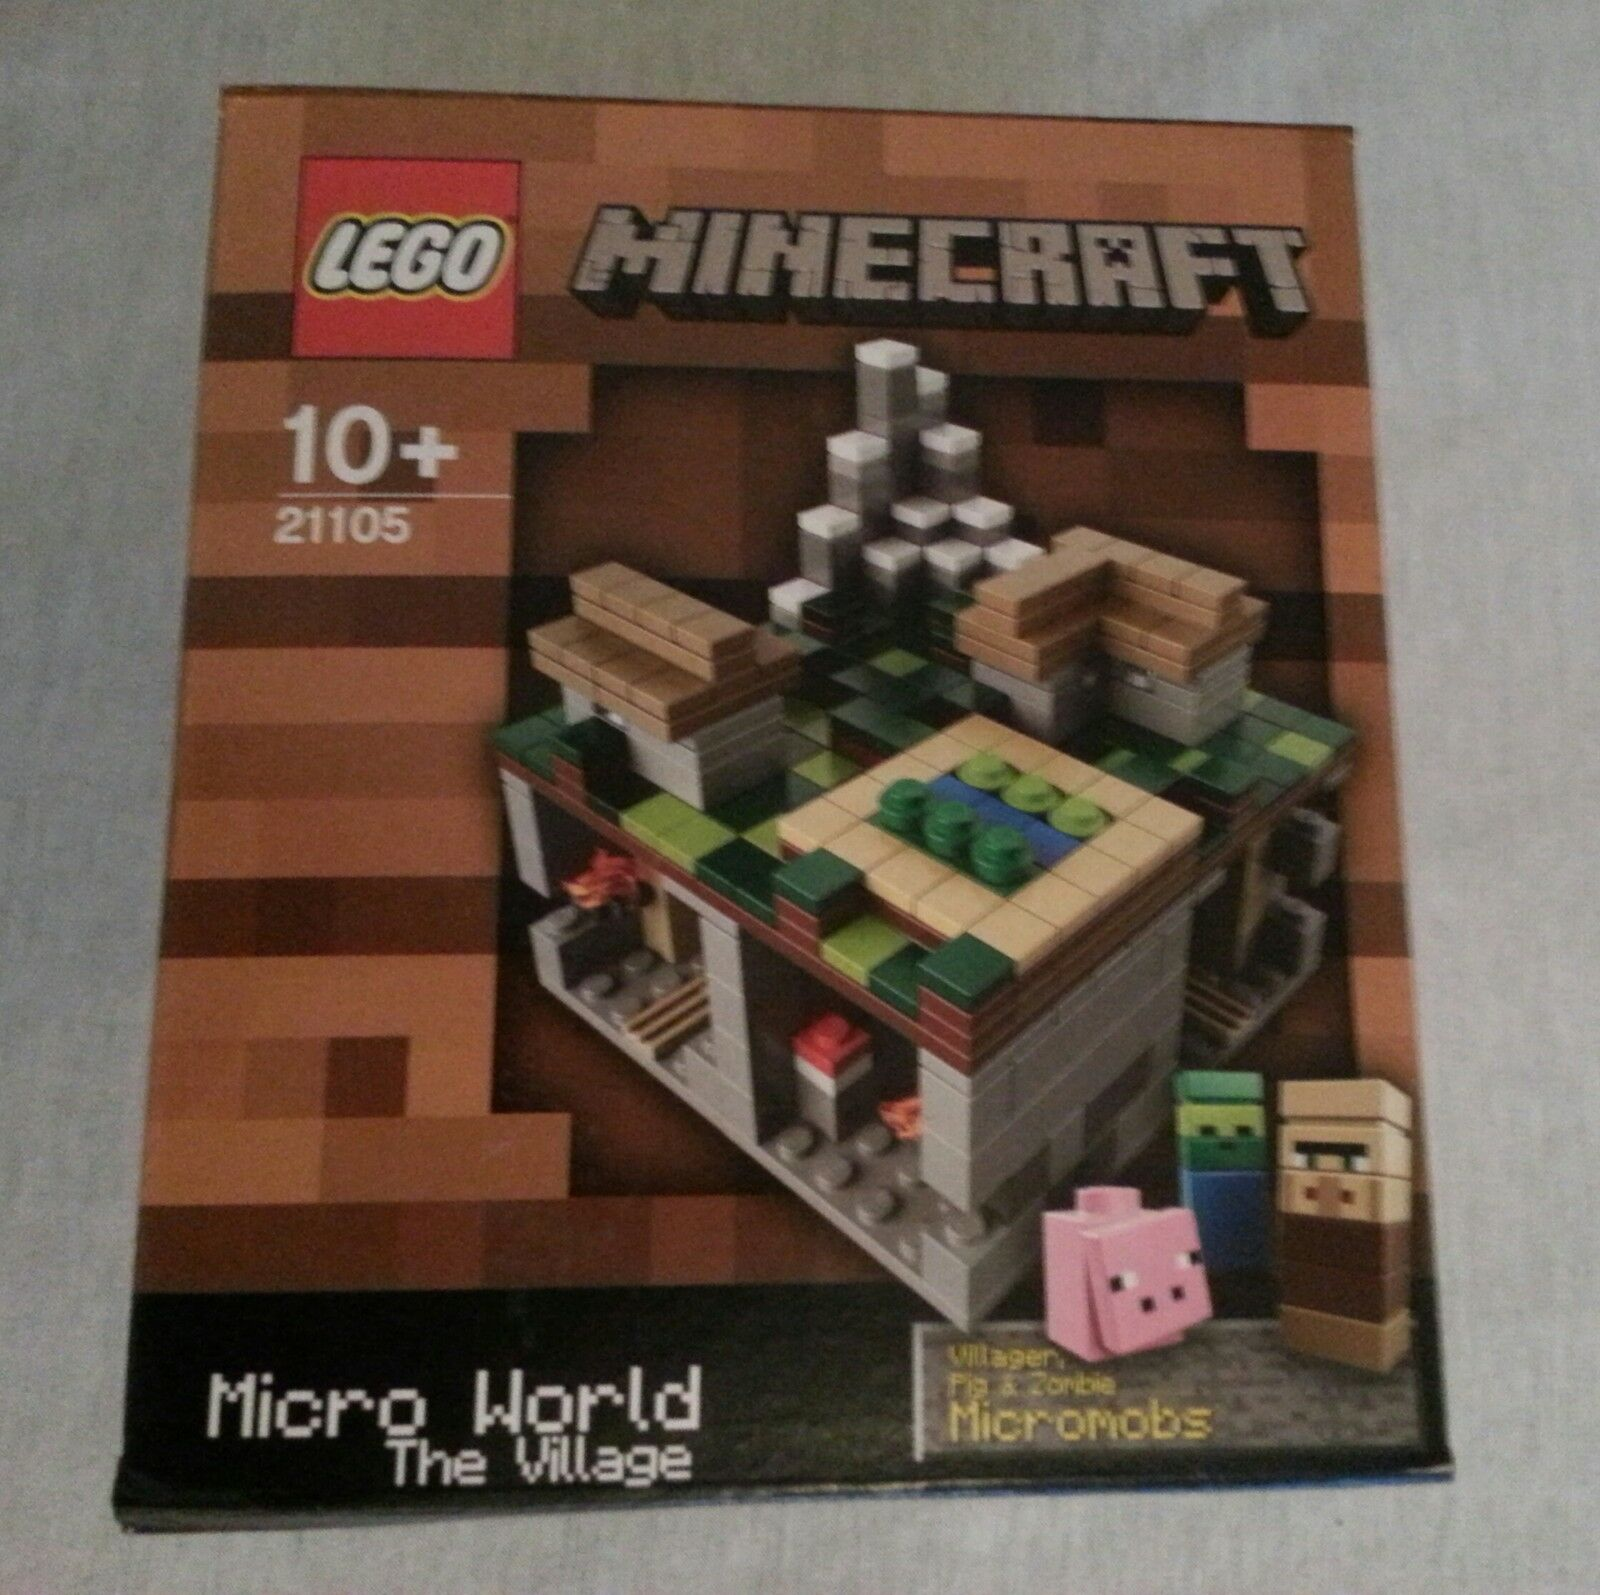 LEGO ® CUUSOO 21105 MINECRAFT THE VILLAGE NUOVO & SCATOLA ORIGINALE/NEW SEALED